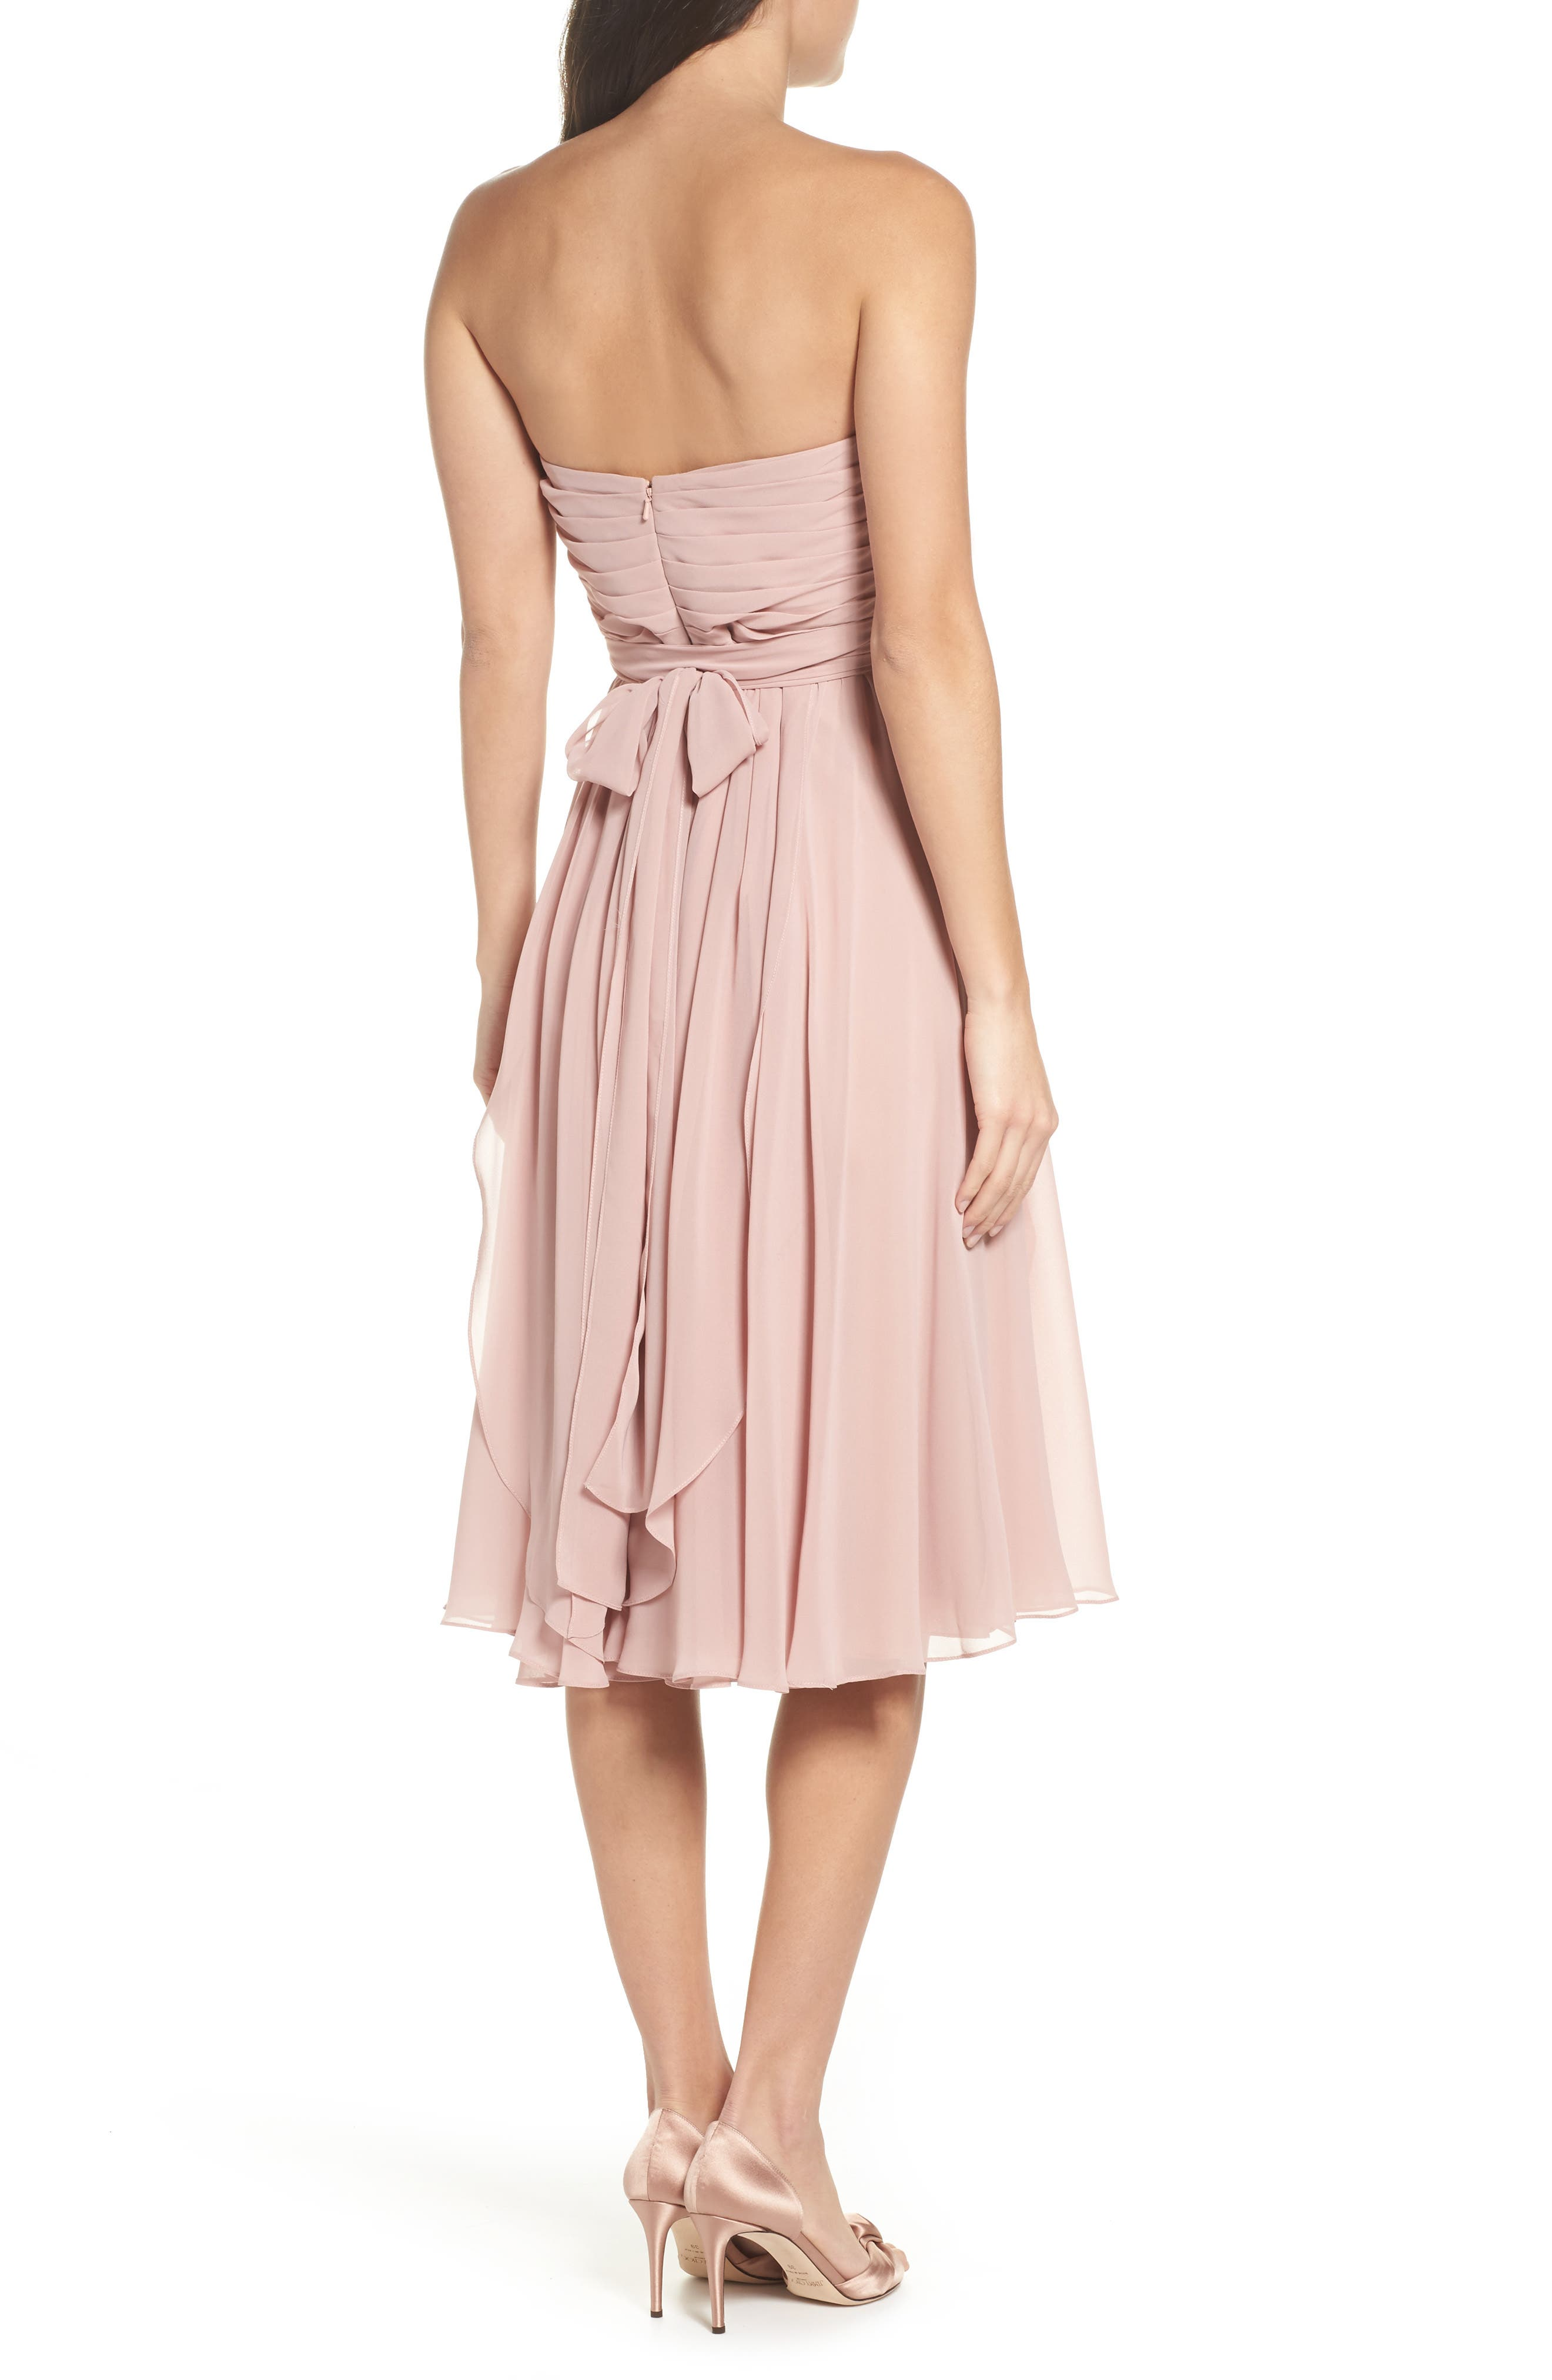 Mid length bridesmaid wedding party dresses nordstrom ombrellifo Gallery